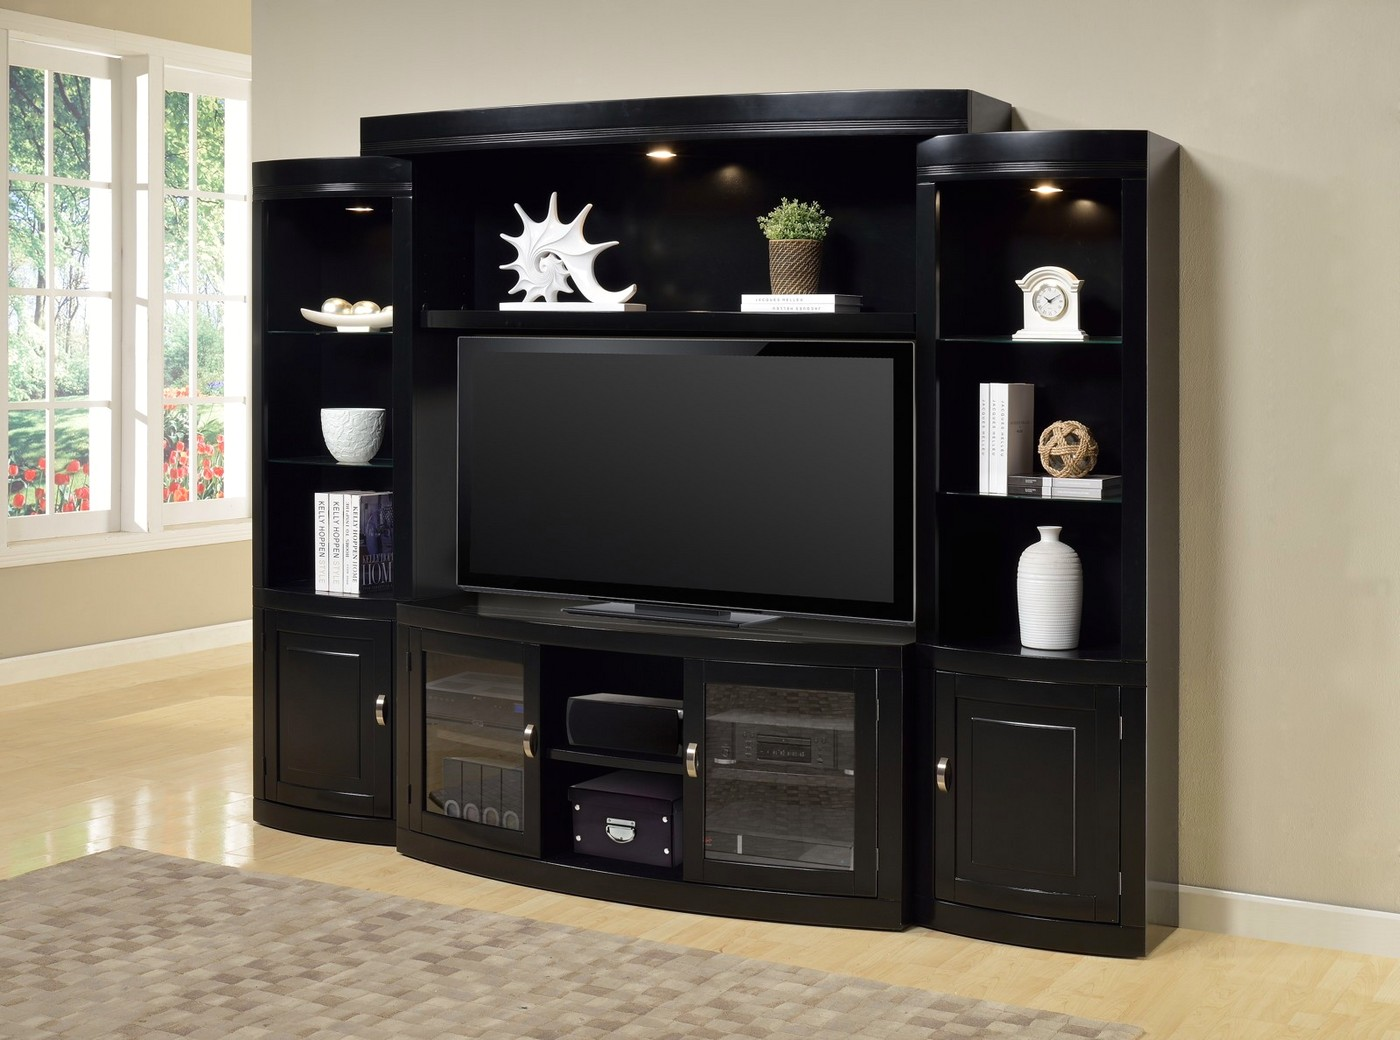 Premier Boardwalk Black 60 Quot Console Entertainment Wall